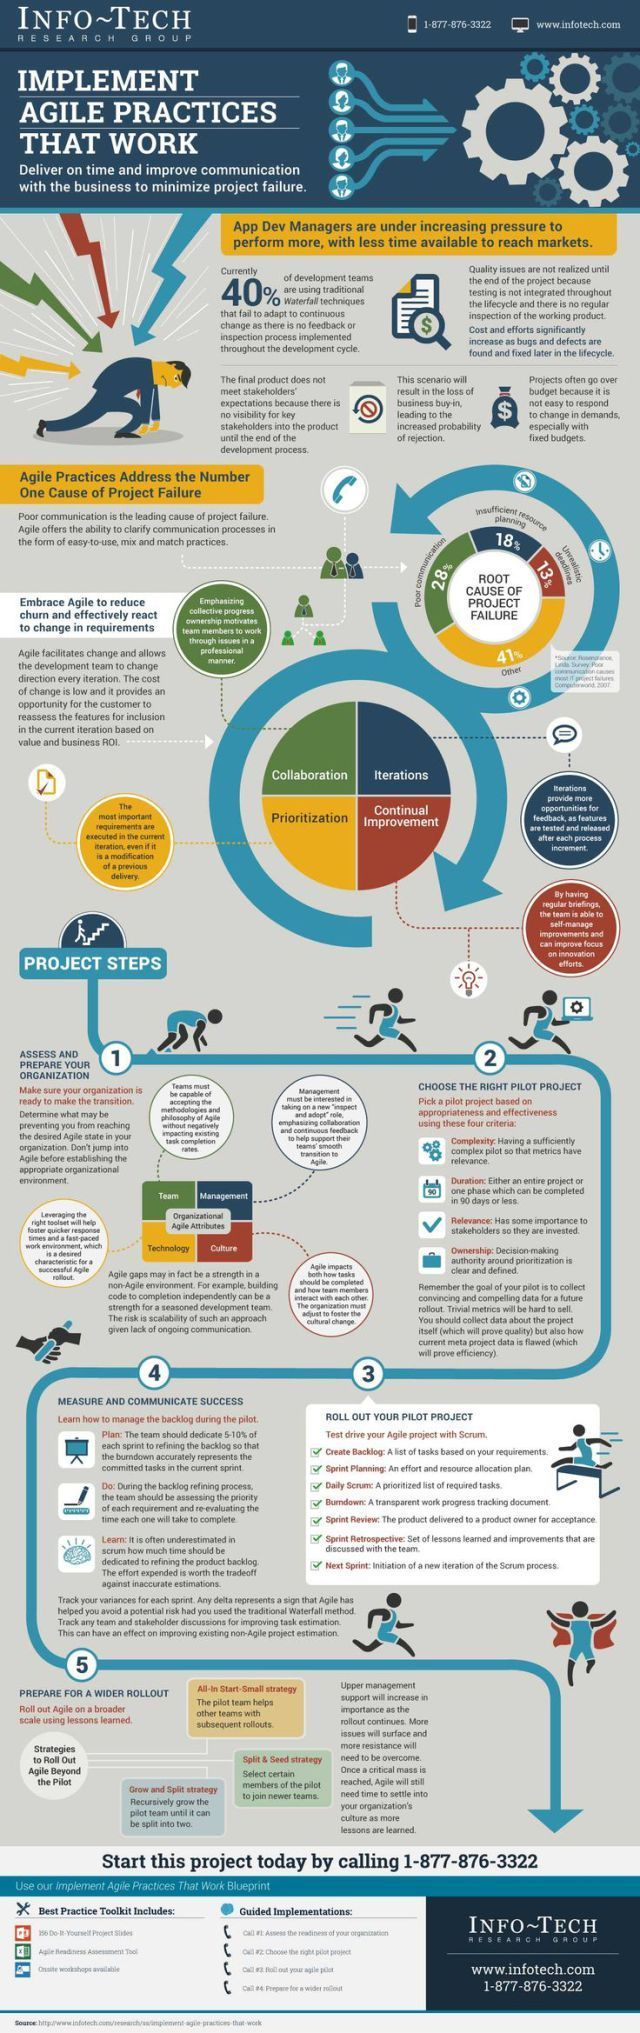 Startup infographic Agile Practices That Work Webmag.co